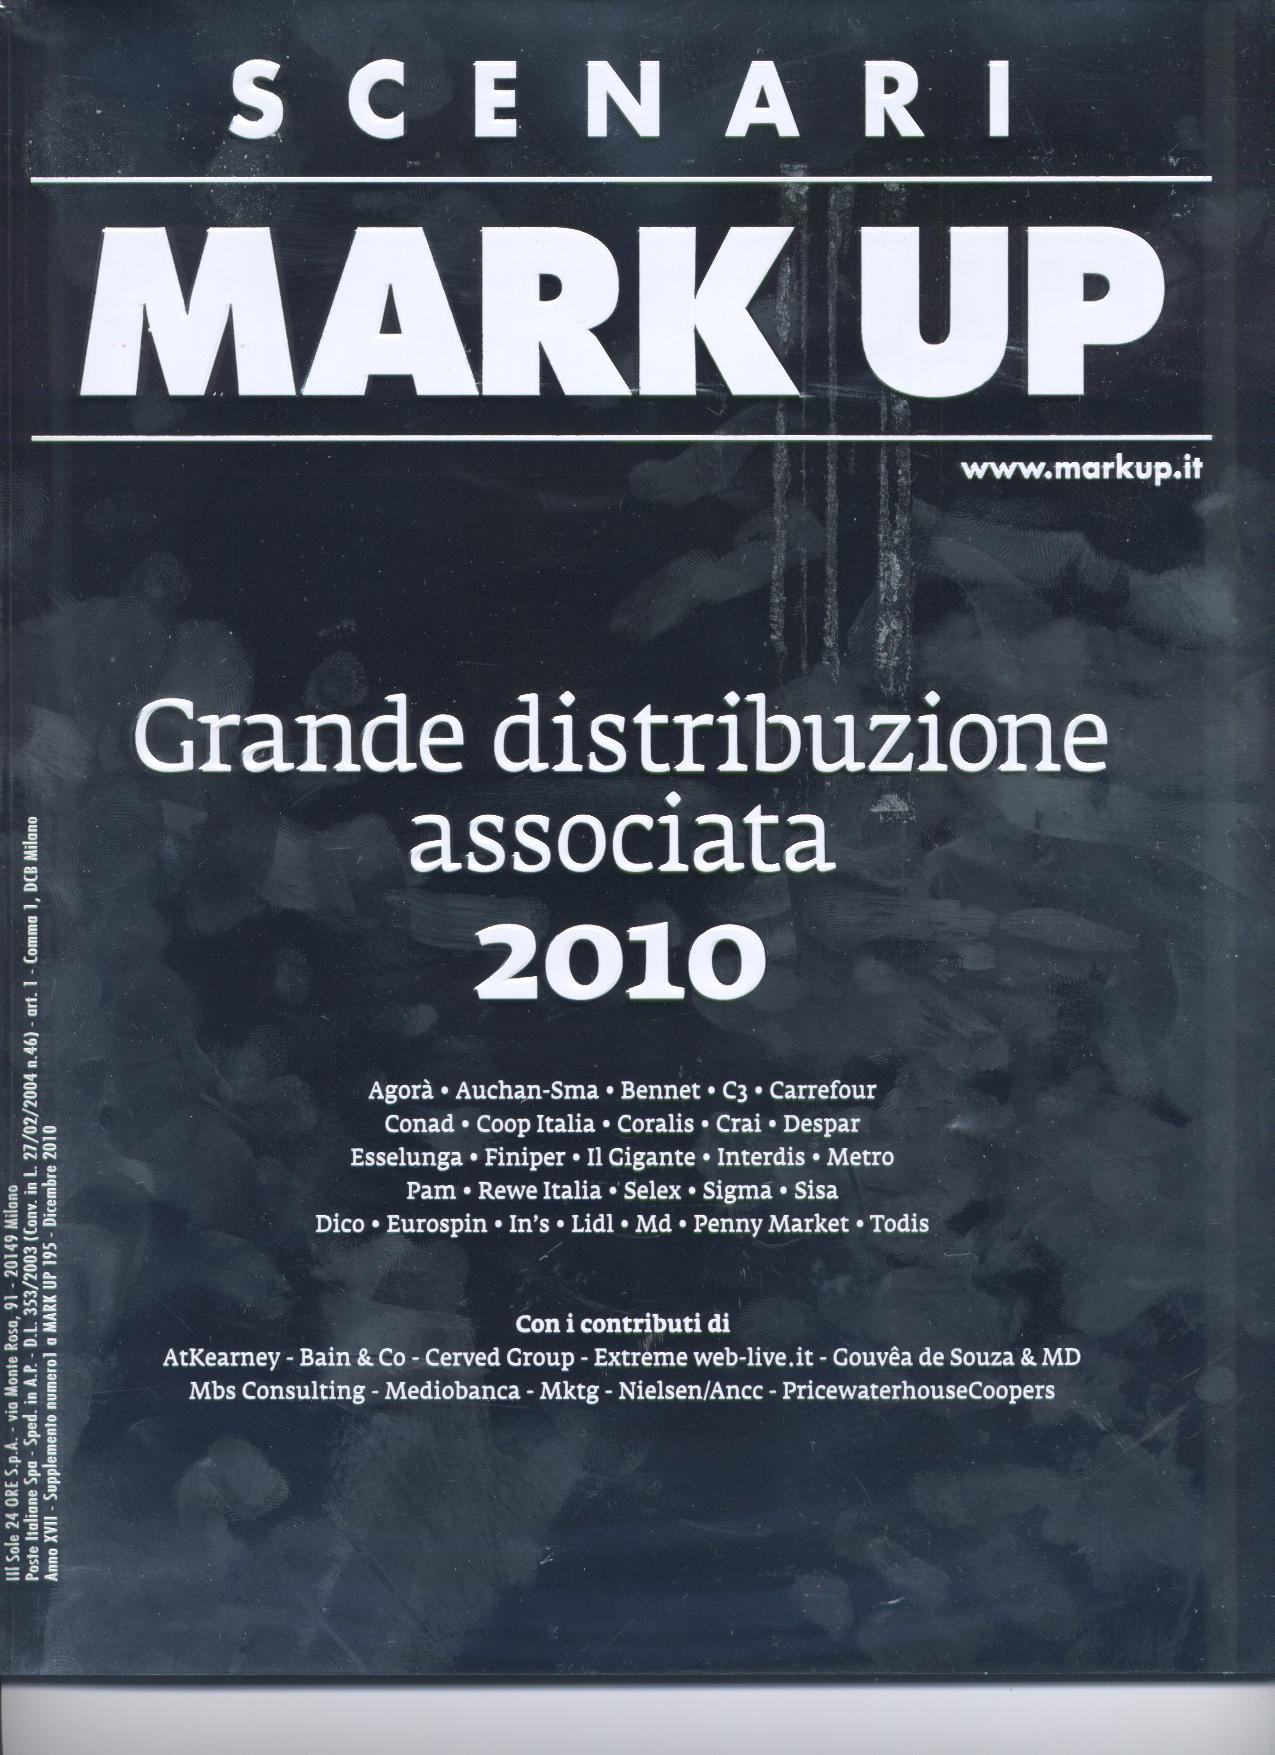 Mark_Up_Scenari_-_2010_-_MrPET